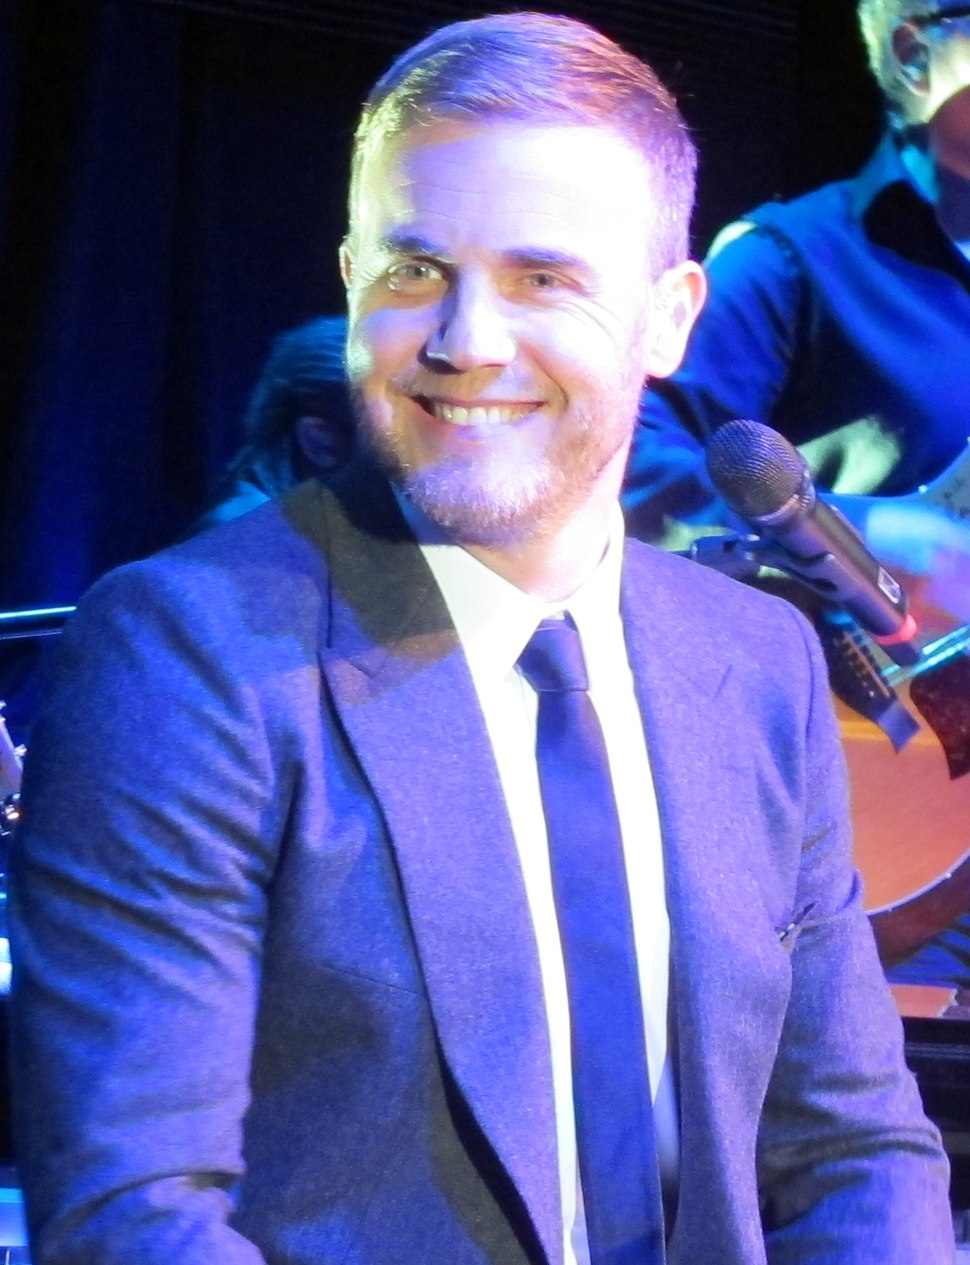 Gary barlow in concert face